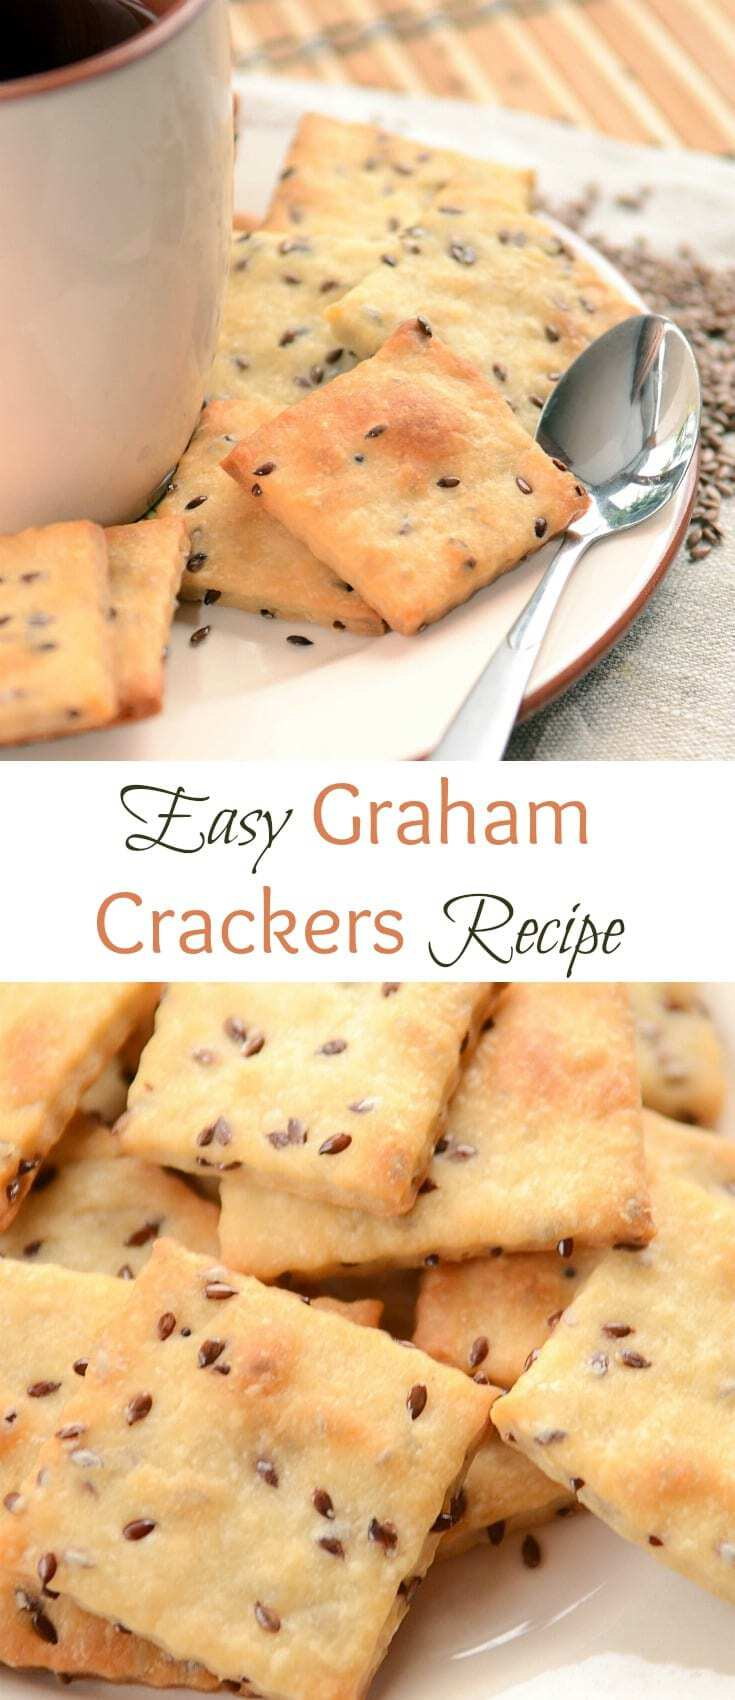 Easy Graham Crackers Recipe is a fast and no-fail snack that you and your kids will love. Crackers come out lightly sweet with a slight puff pastry texture. Goes well with tea or coffee.